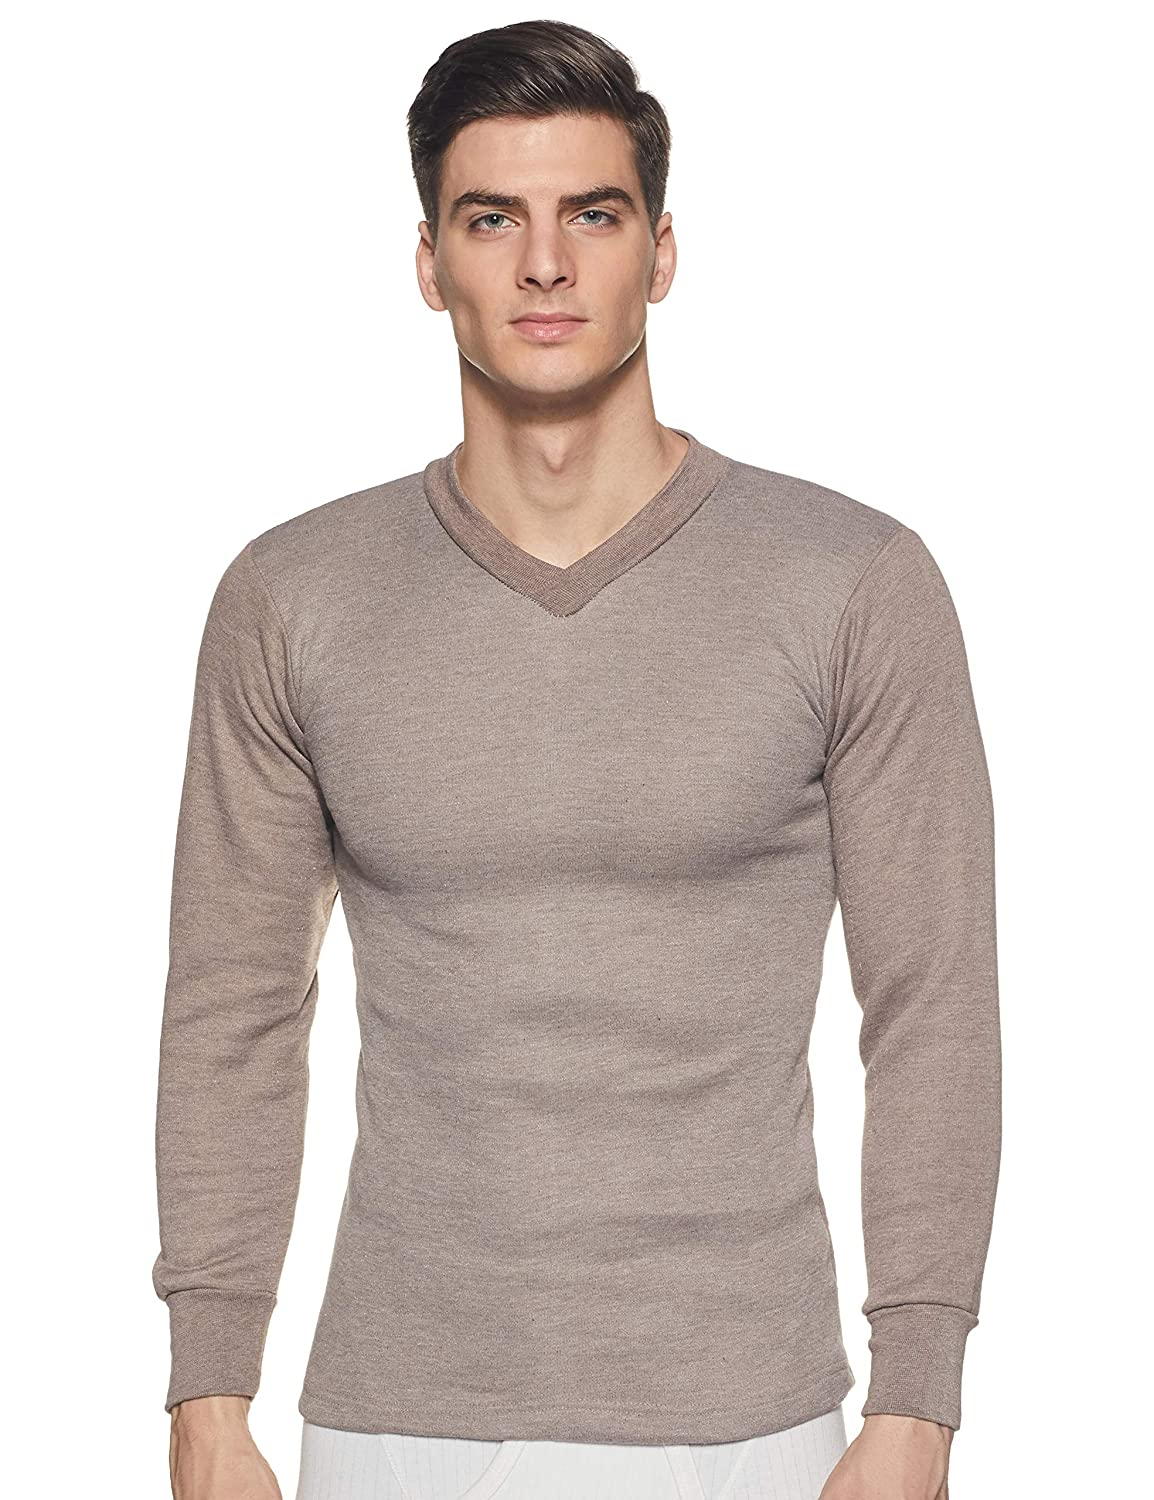 Rupa Thermocot Men's Cotton Thermal Top – Size 85, 90